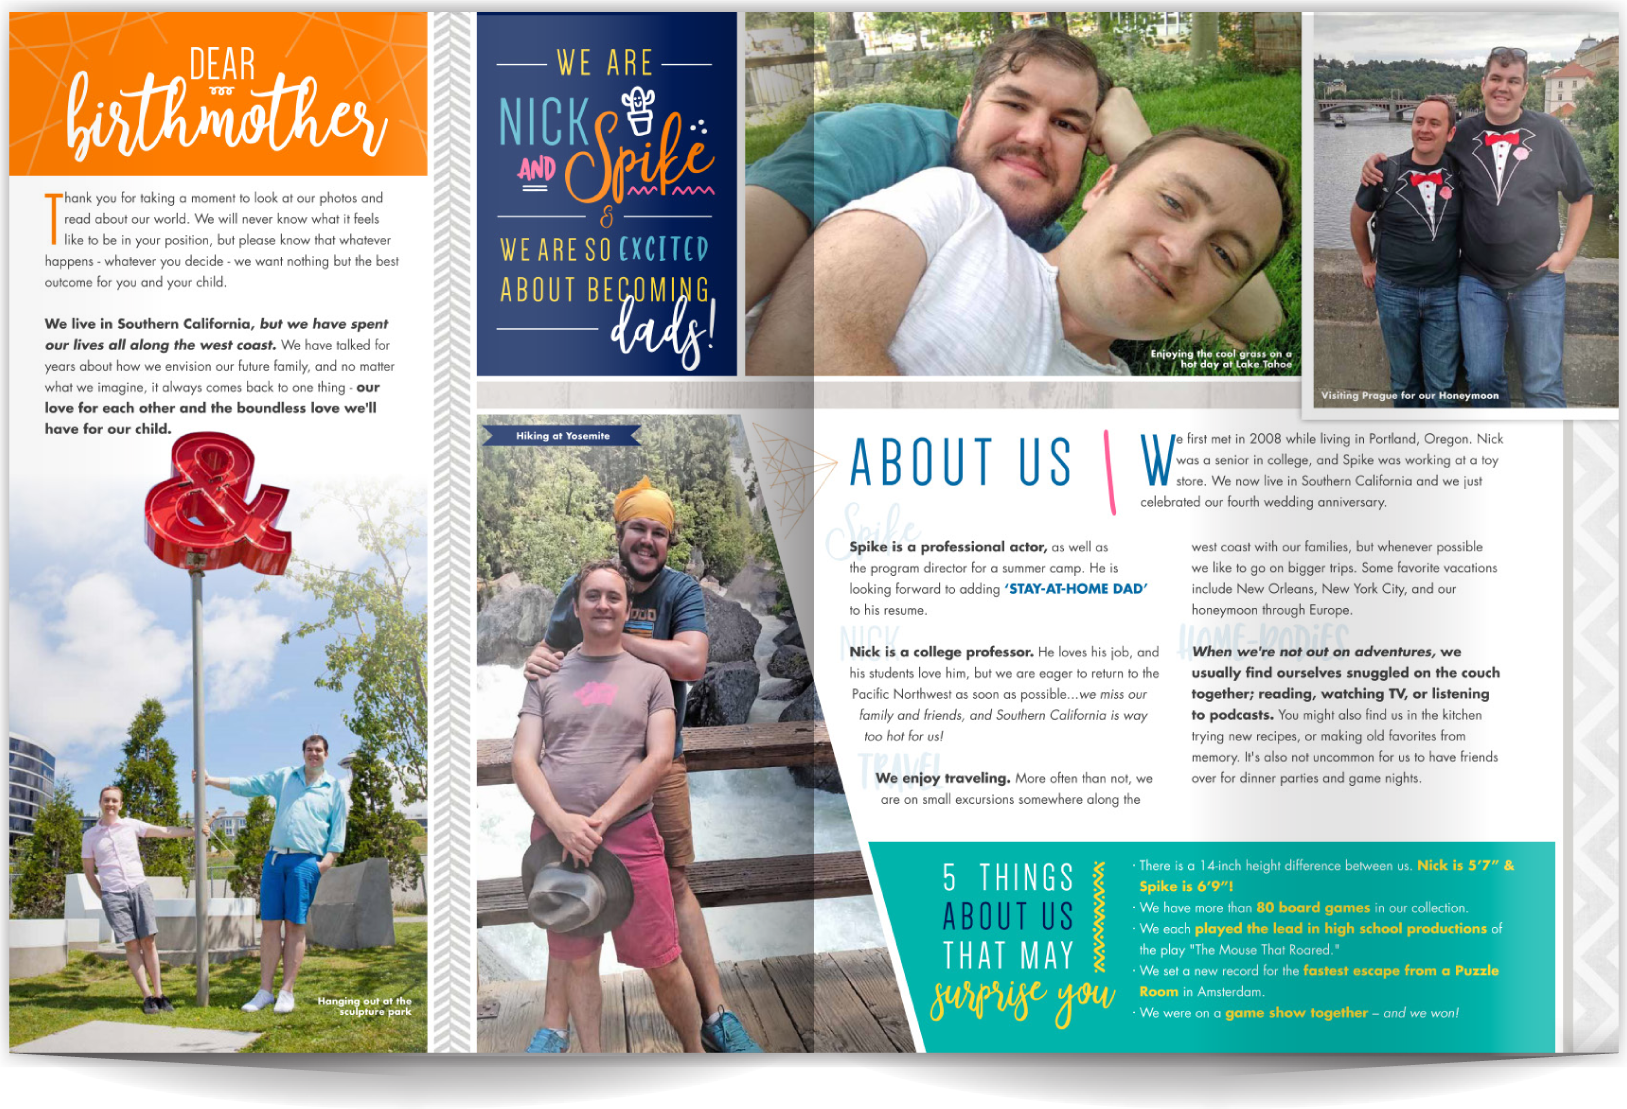 PAGE LAYOUT STYLE 15 - With photos this amazing we wanted to create a layout that enhanced but didn't overshadow them. High-quality photos filled with personality and affection benefit from being used in a larger scale so the reader can really connect. We used cool cutouts, photo angles, and interesting fonts to really punch this profile up.